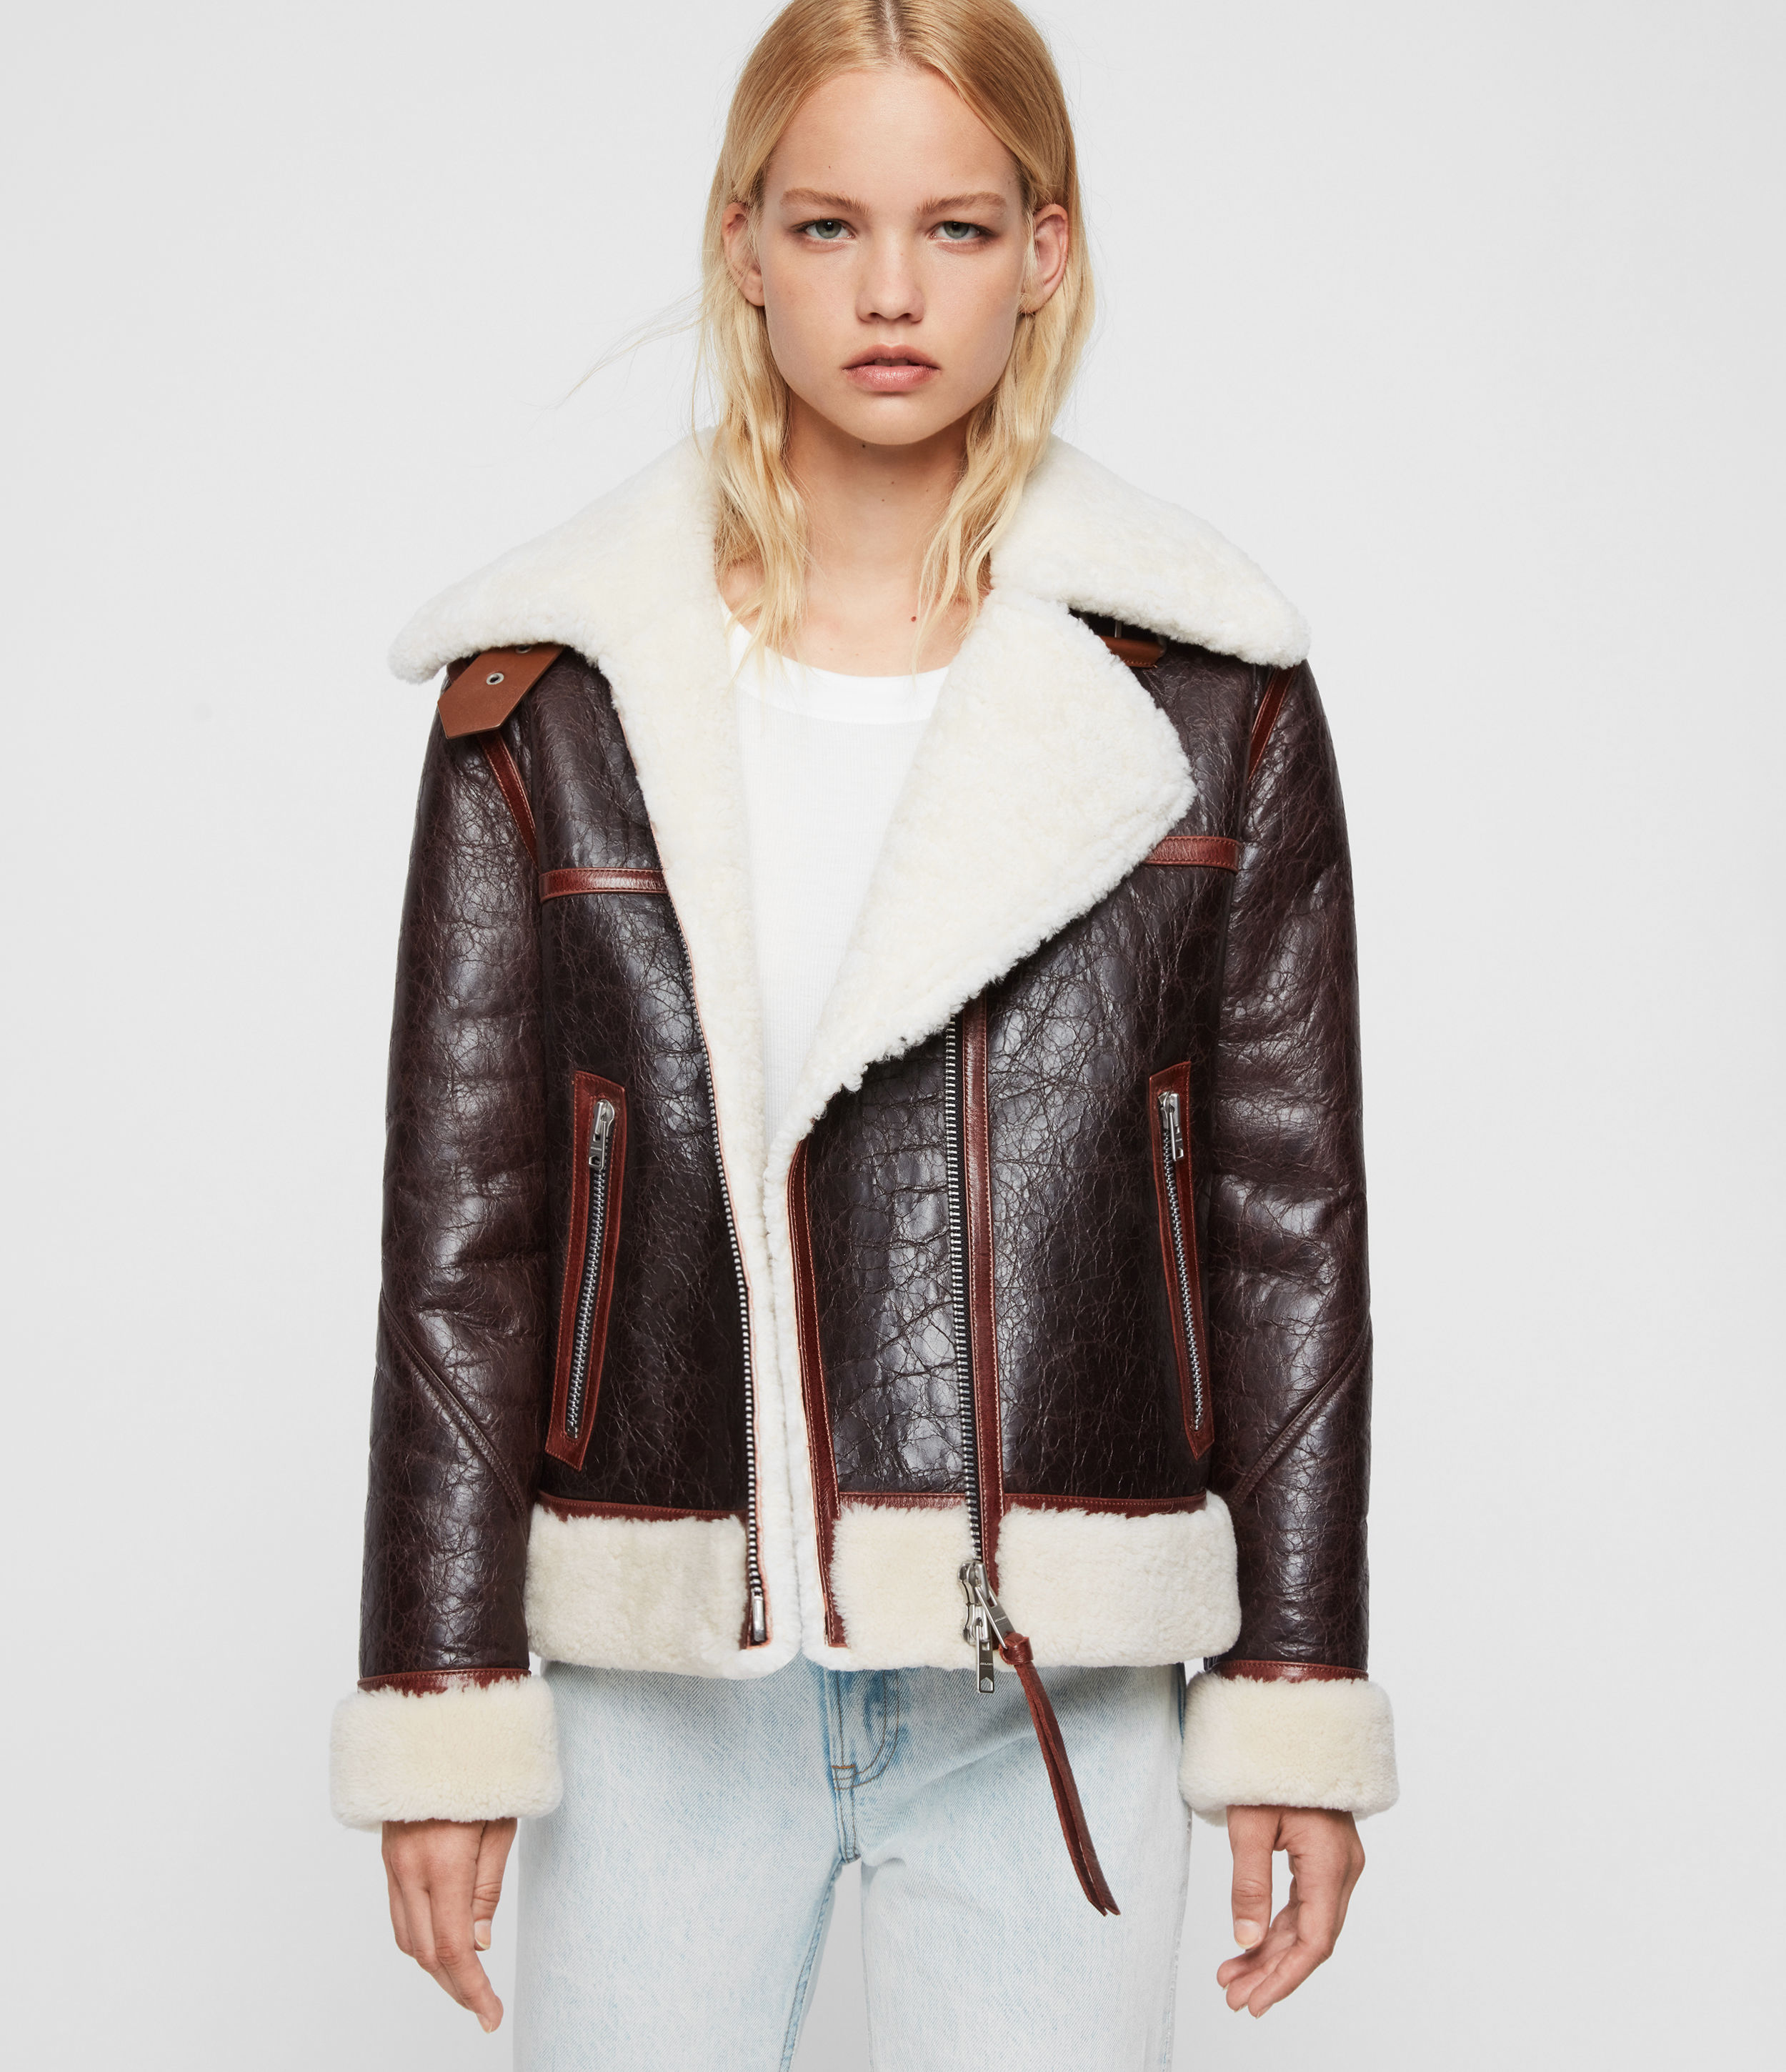 AllSaints Women's Sheepskin Elder Shearling Biker Jacket, Brown and White, Size: S